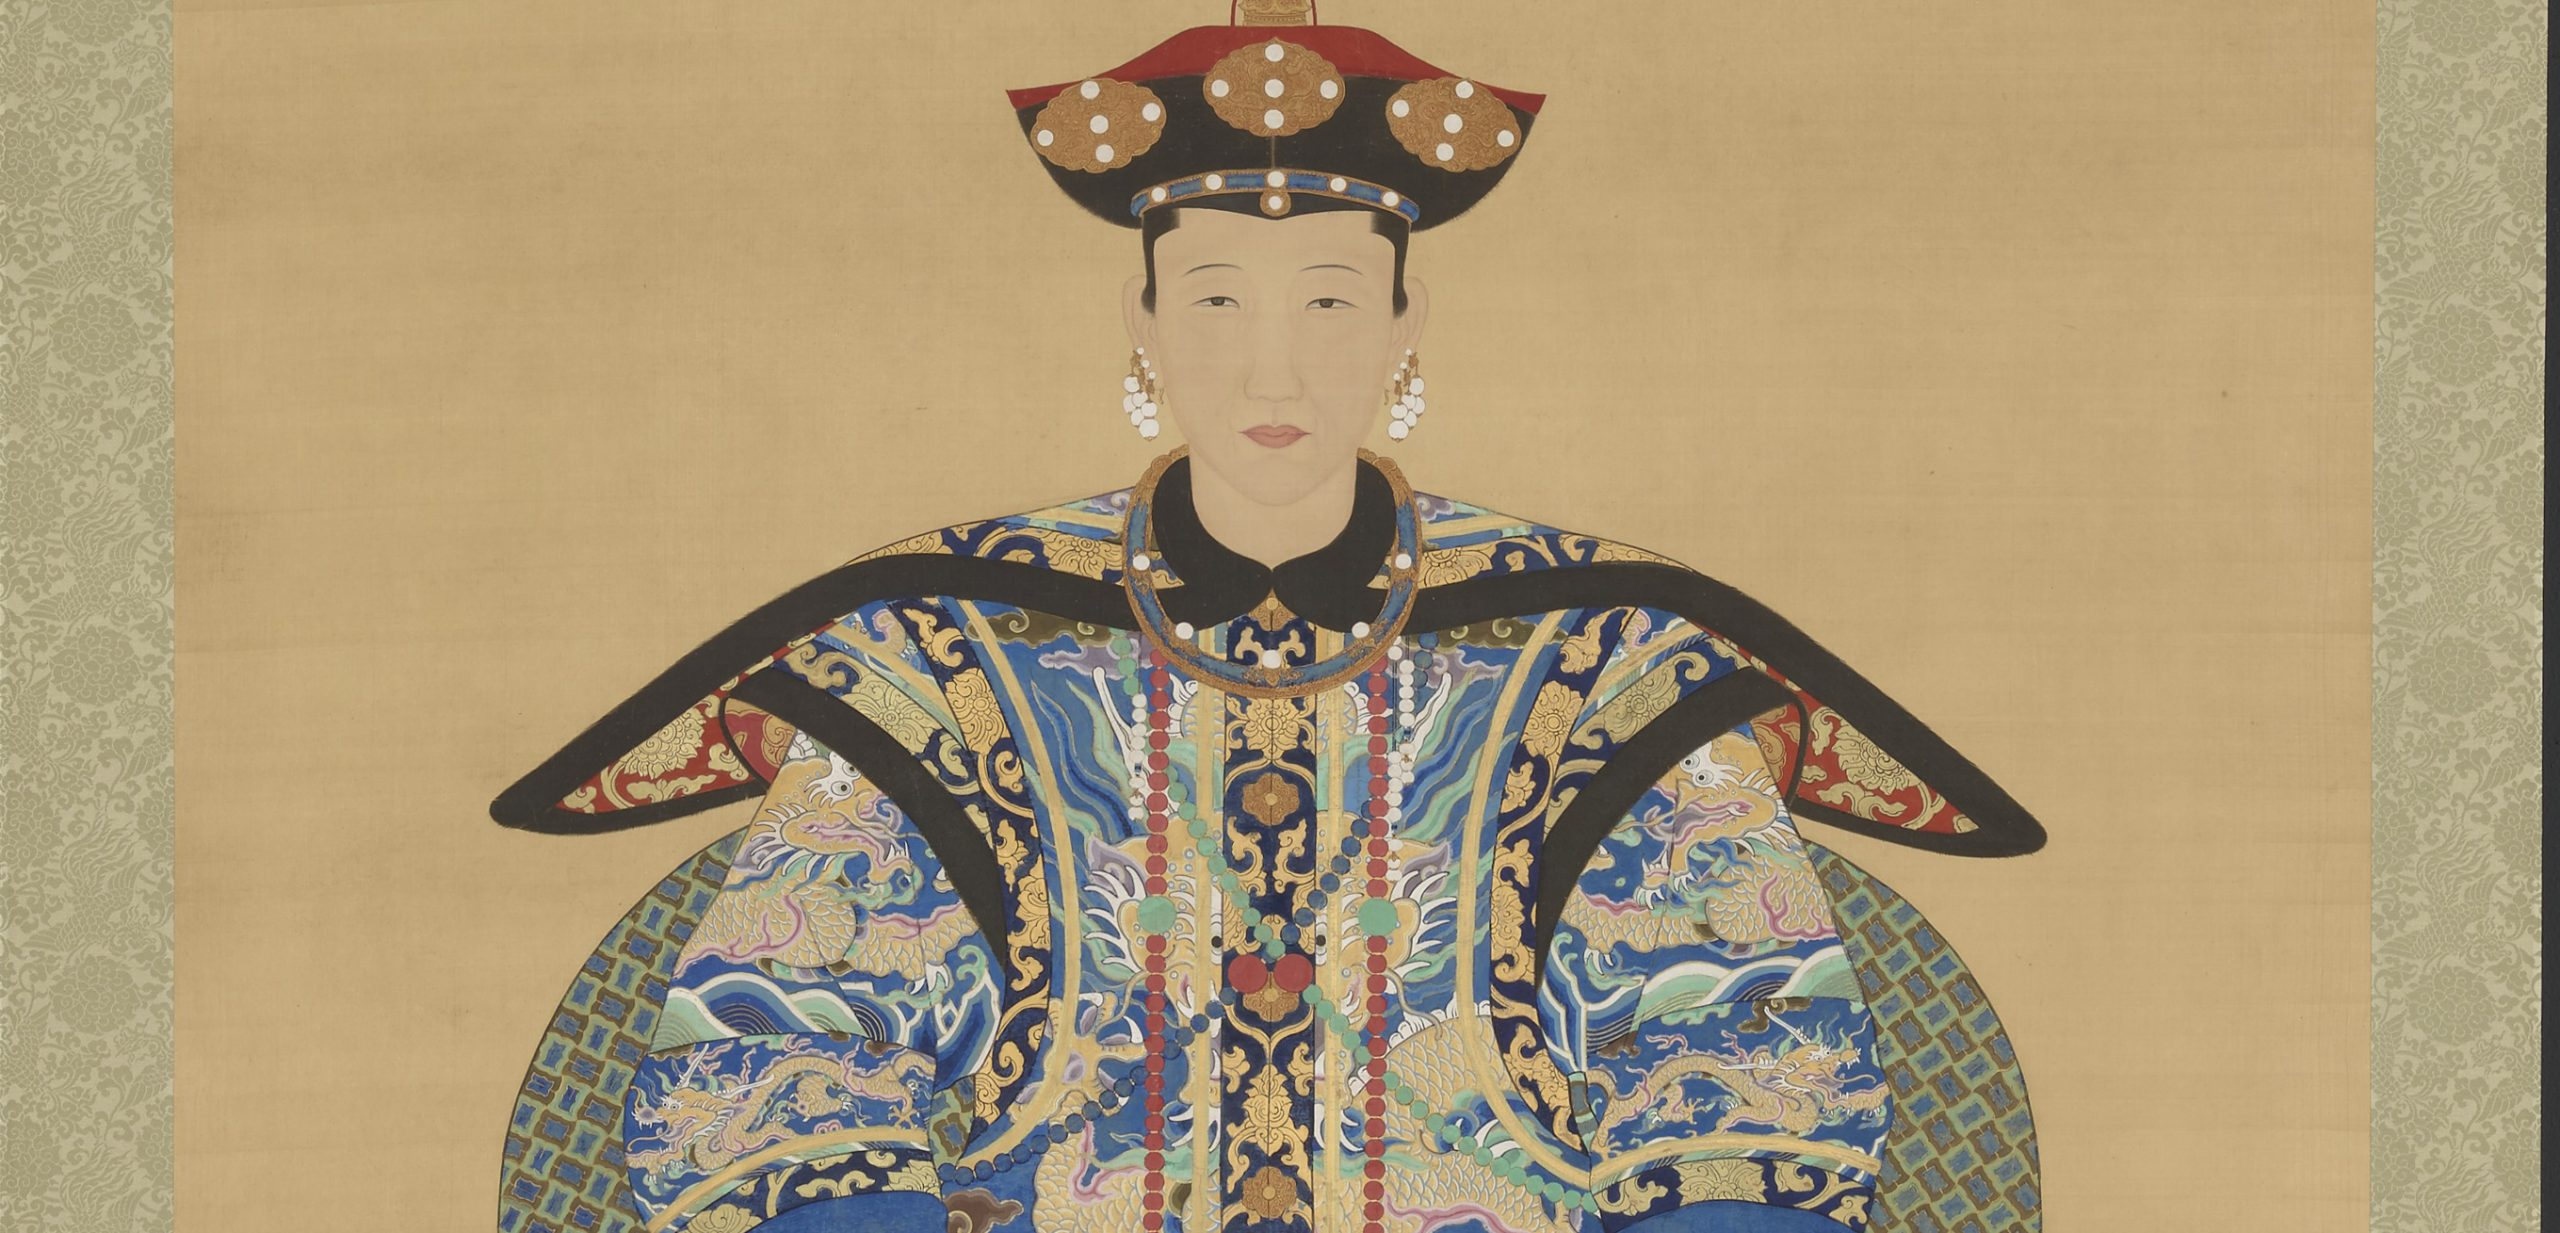 detail of illustration of women in traditional chinese attire